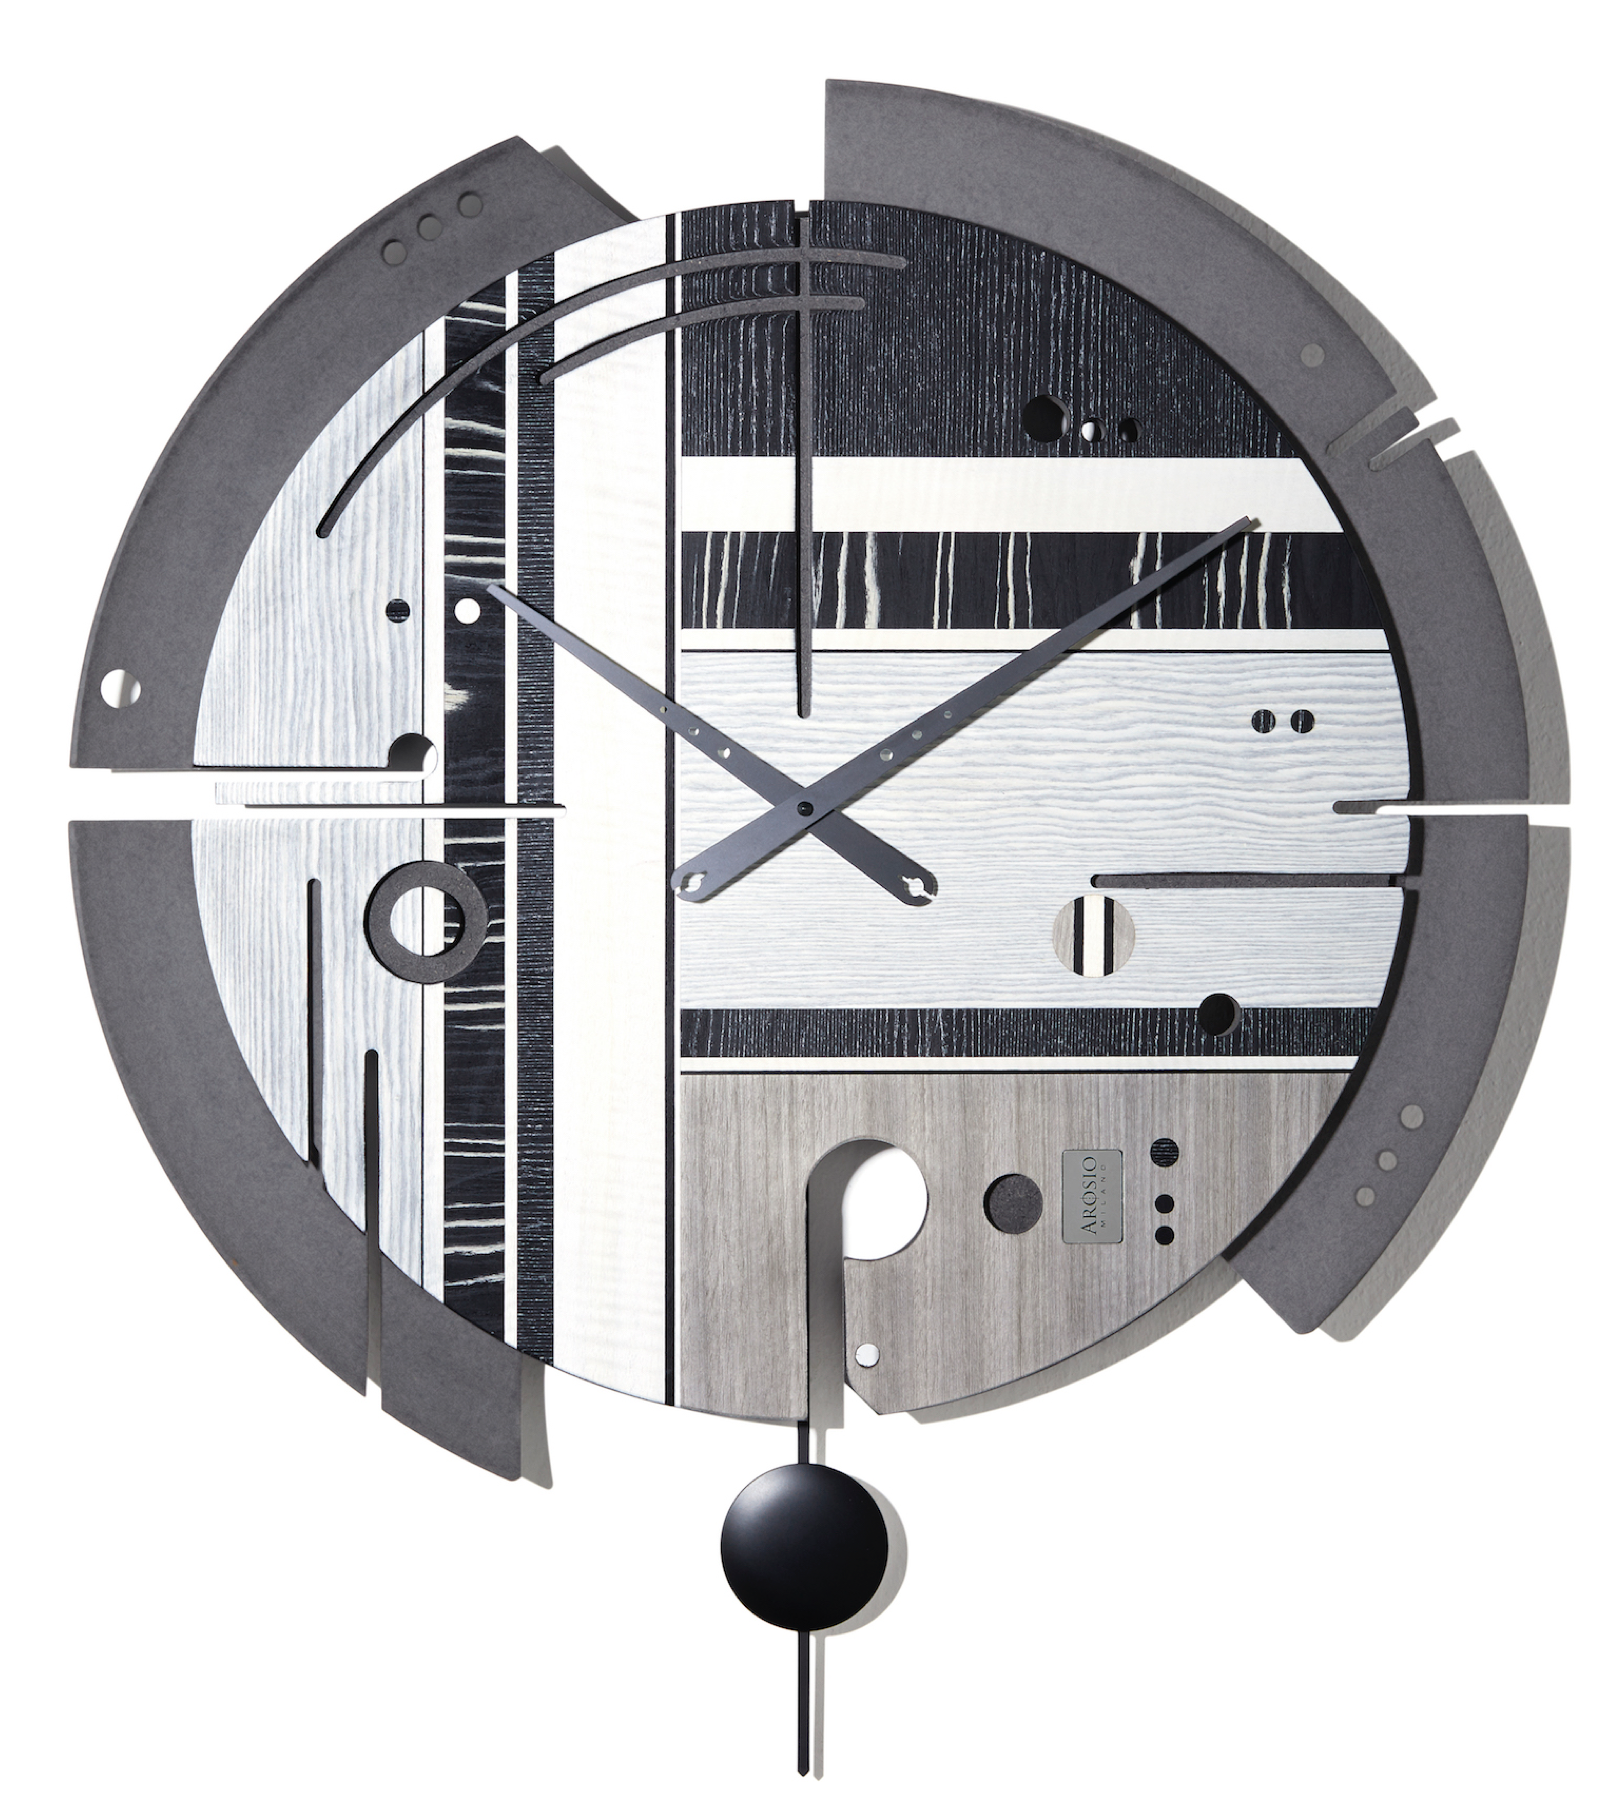 Samada Tech - Wood Wall Clock - Arosio Milano